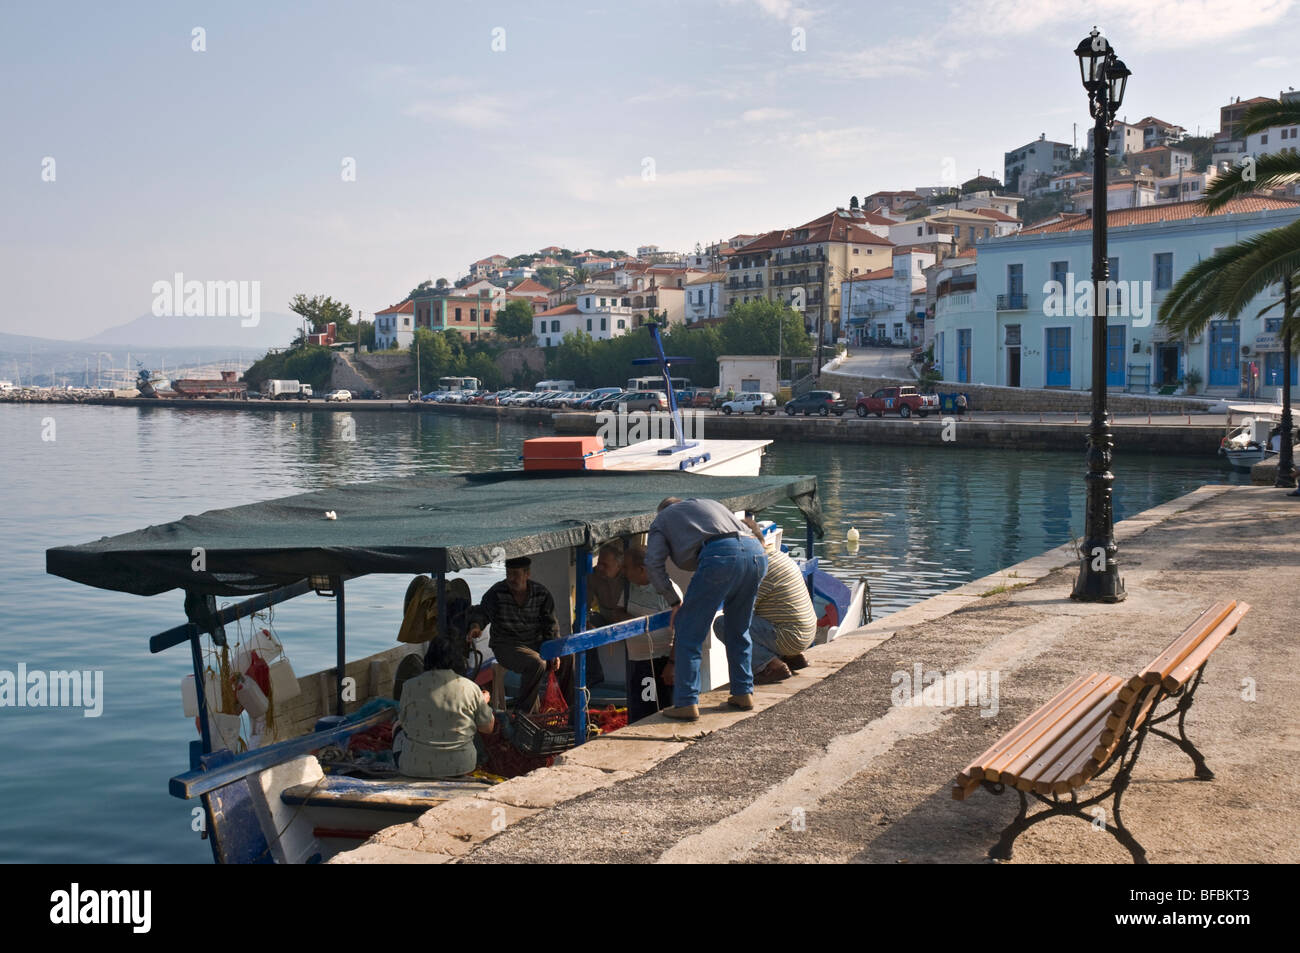 Fishing boats in the harbour at Pylos, Messinia, Southern Peloponnese, Greece - Stock Image